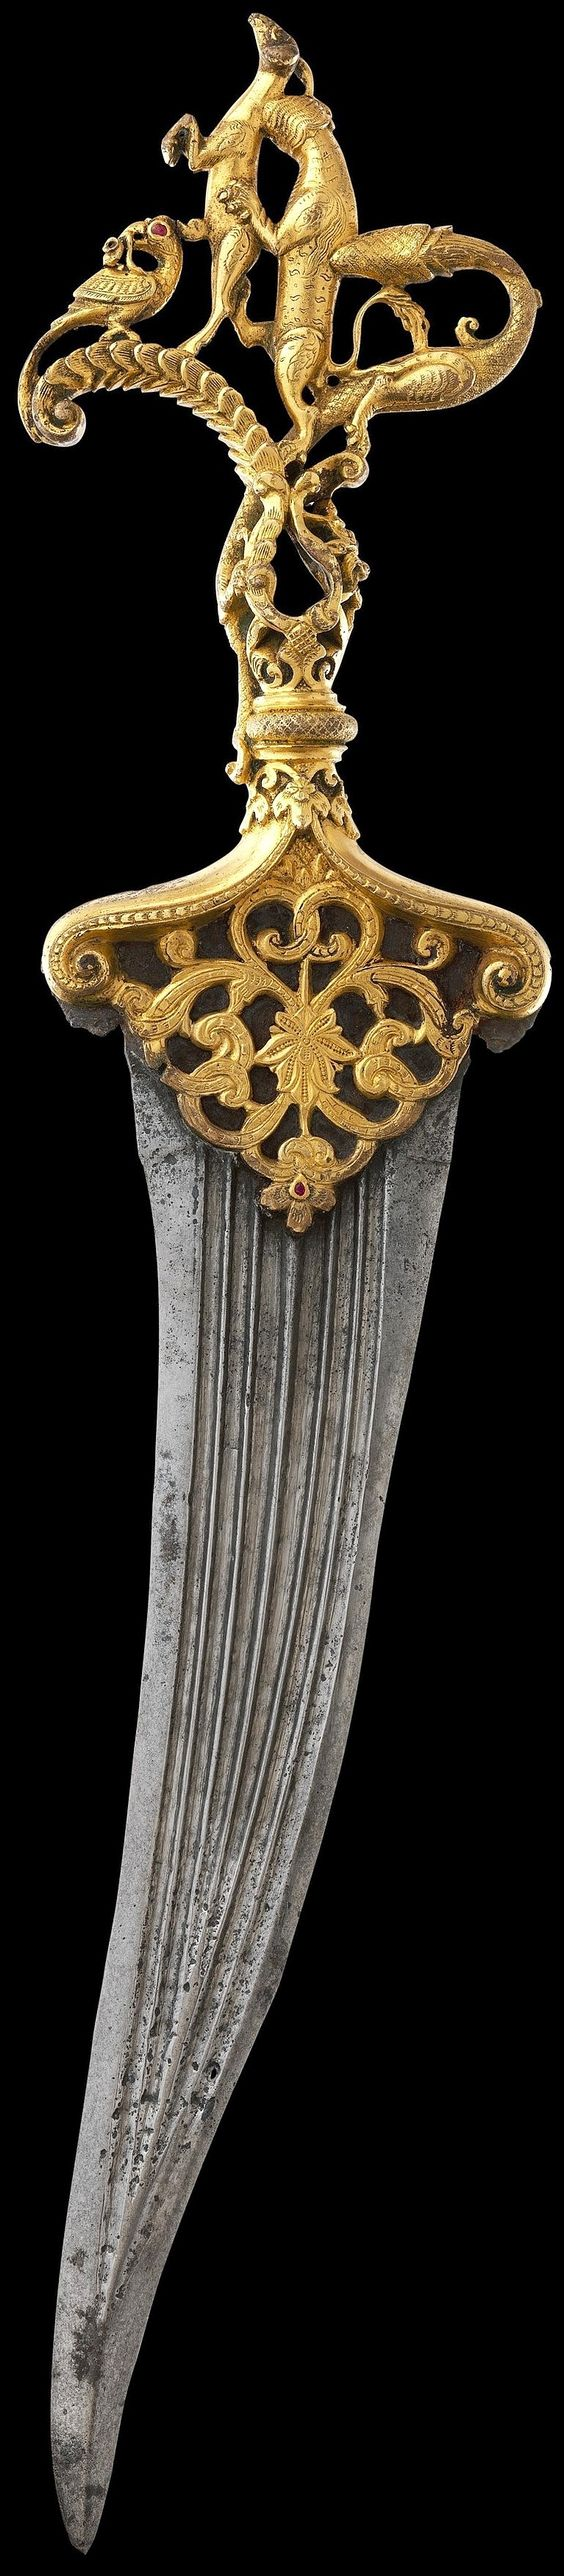 Indian (Deccan, Bijapur or Golconda) dagger, 16th c, cast copper hilt, chased, gilded, inlaid with rubies. Portraits of Sultan 'Ali 'Adil Shah of Bijapur 1558–80 show him wearing similar zoomorphic hilt daggers. In the ruby-studded hilt, a dragon whose tail wraps around the grip attacks a lion, which is attacking a deer, symbolic of the deity Garuda. Before the deer is a bird with a snake in its beak. Lower down is a mythical lionlike Yali, with floral scrolls issuing from its mouth. Met Museum